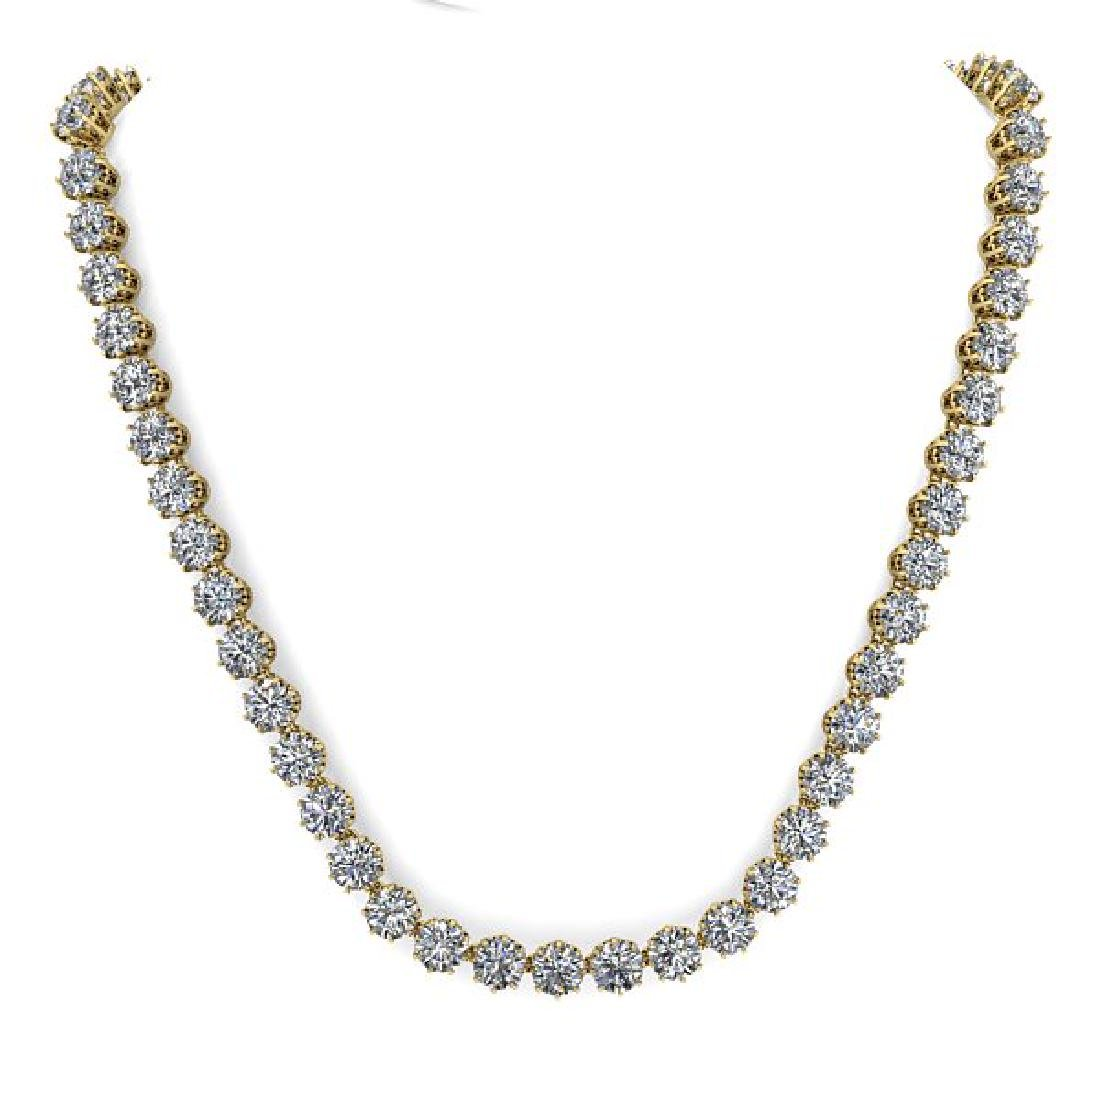 30 CTW SI Certified Diamond Necklace 14K Yellow Gold - 3